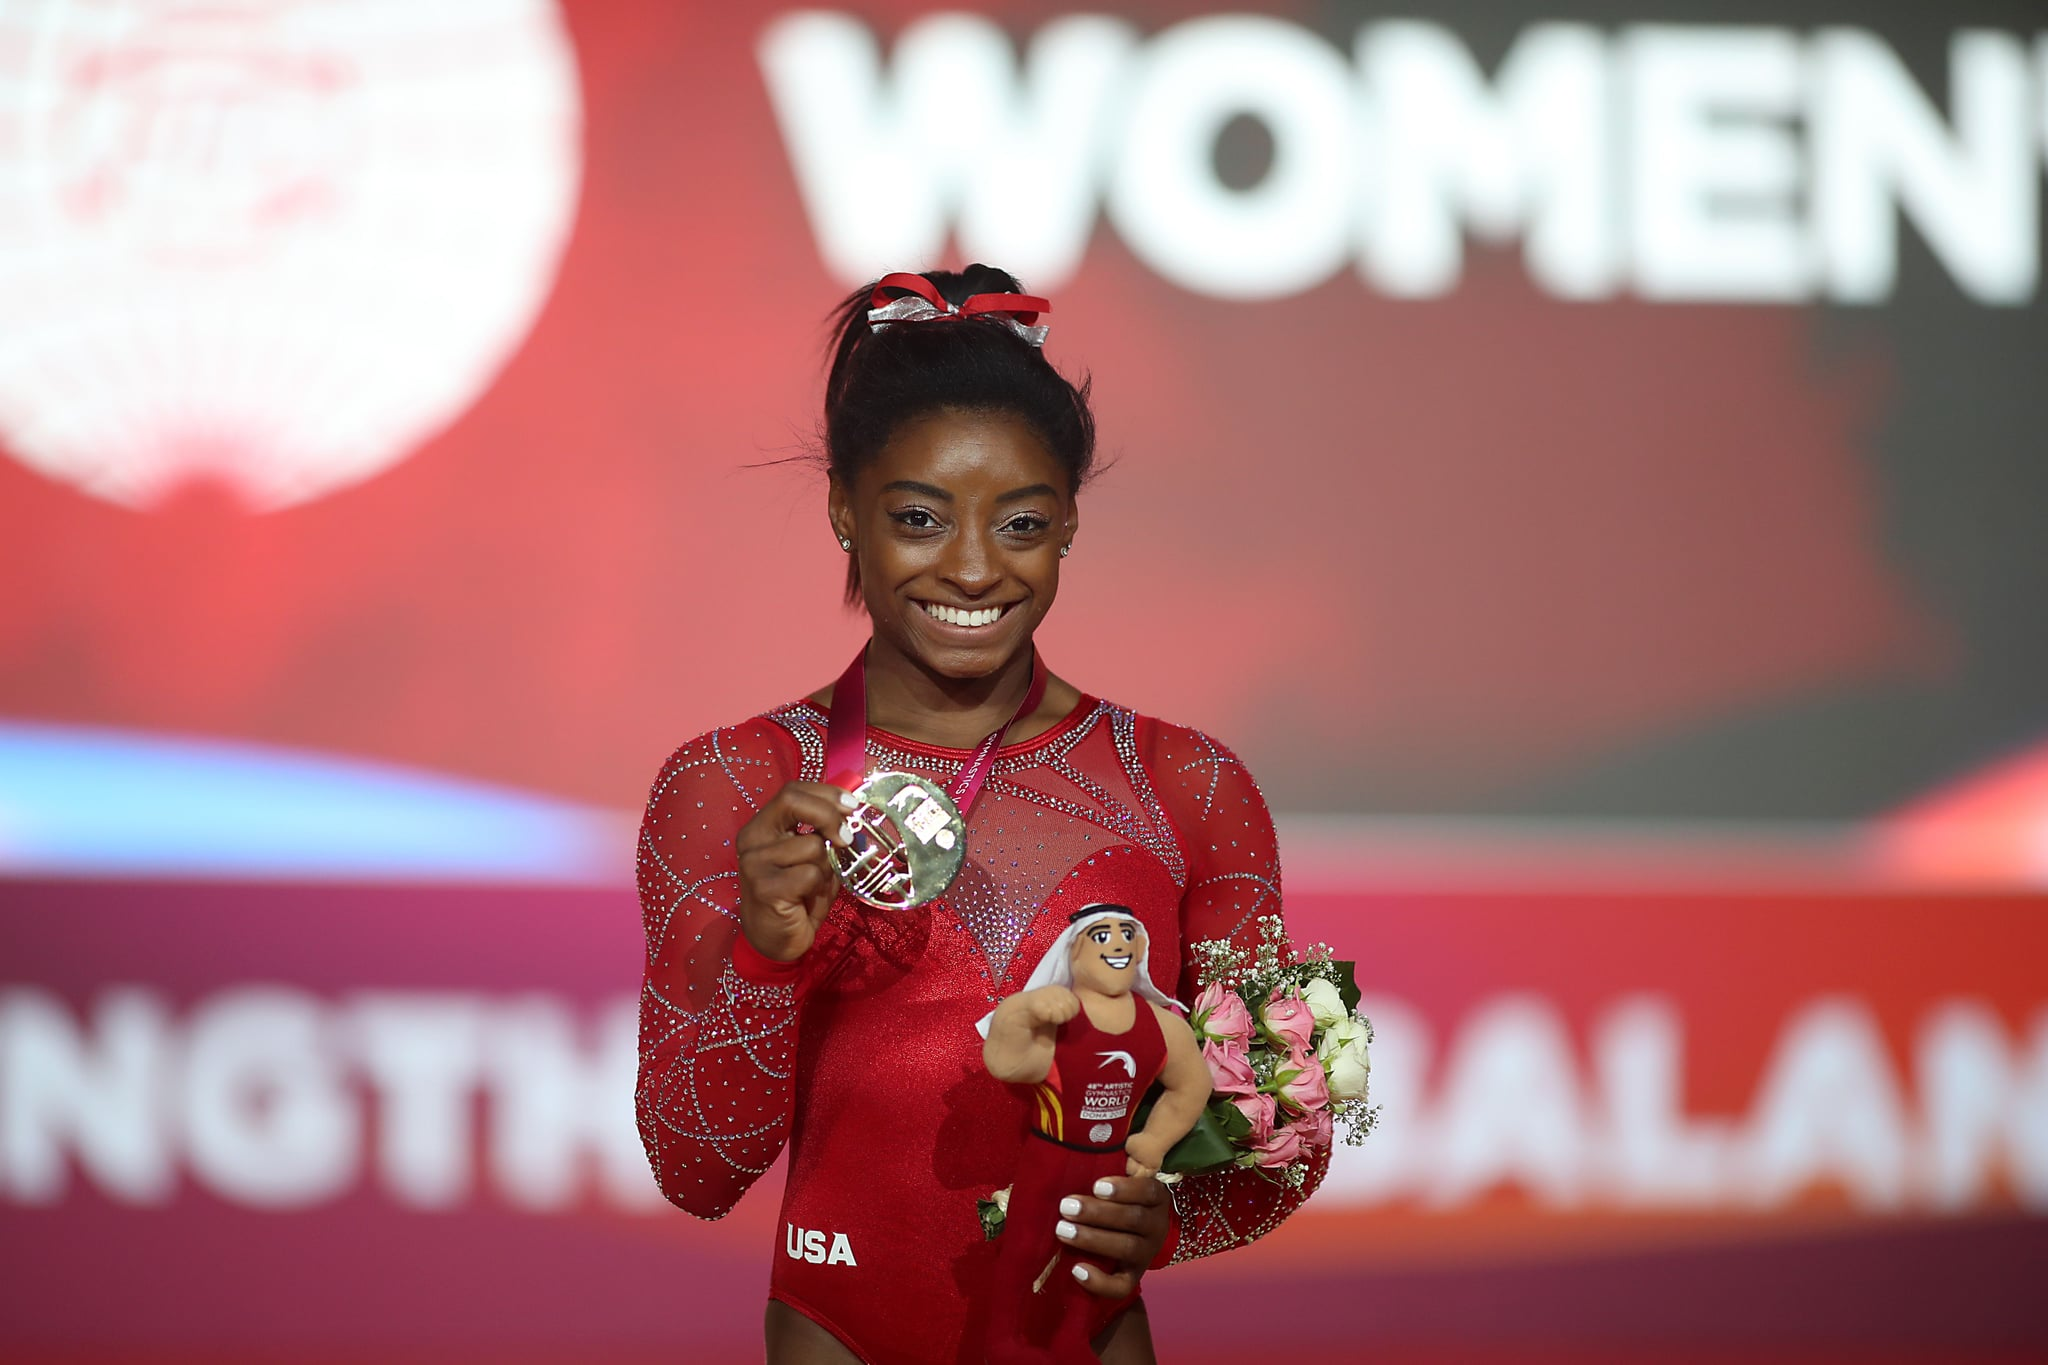 Gold medallist Simone Biles (C) from the US poses for a photograph with her medal after the Floor Exercise final during the 2018 FIG Artistic Gymnastics Championships at the Aspire Dome on November 3, 2018 in Doha. (Photo by KARIM JAAFAR / AFP)        (Photo credit should read KARIM JAAFAR/AFP/Getty Images)